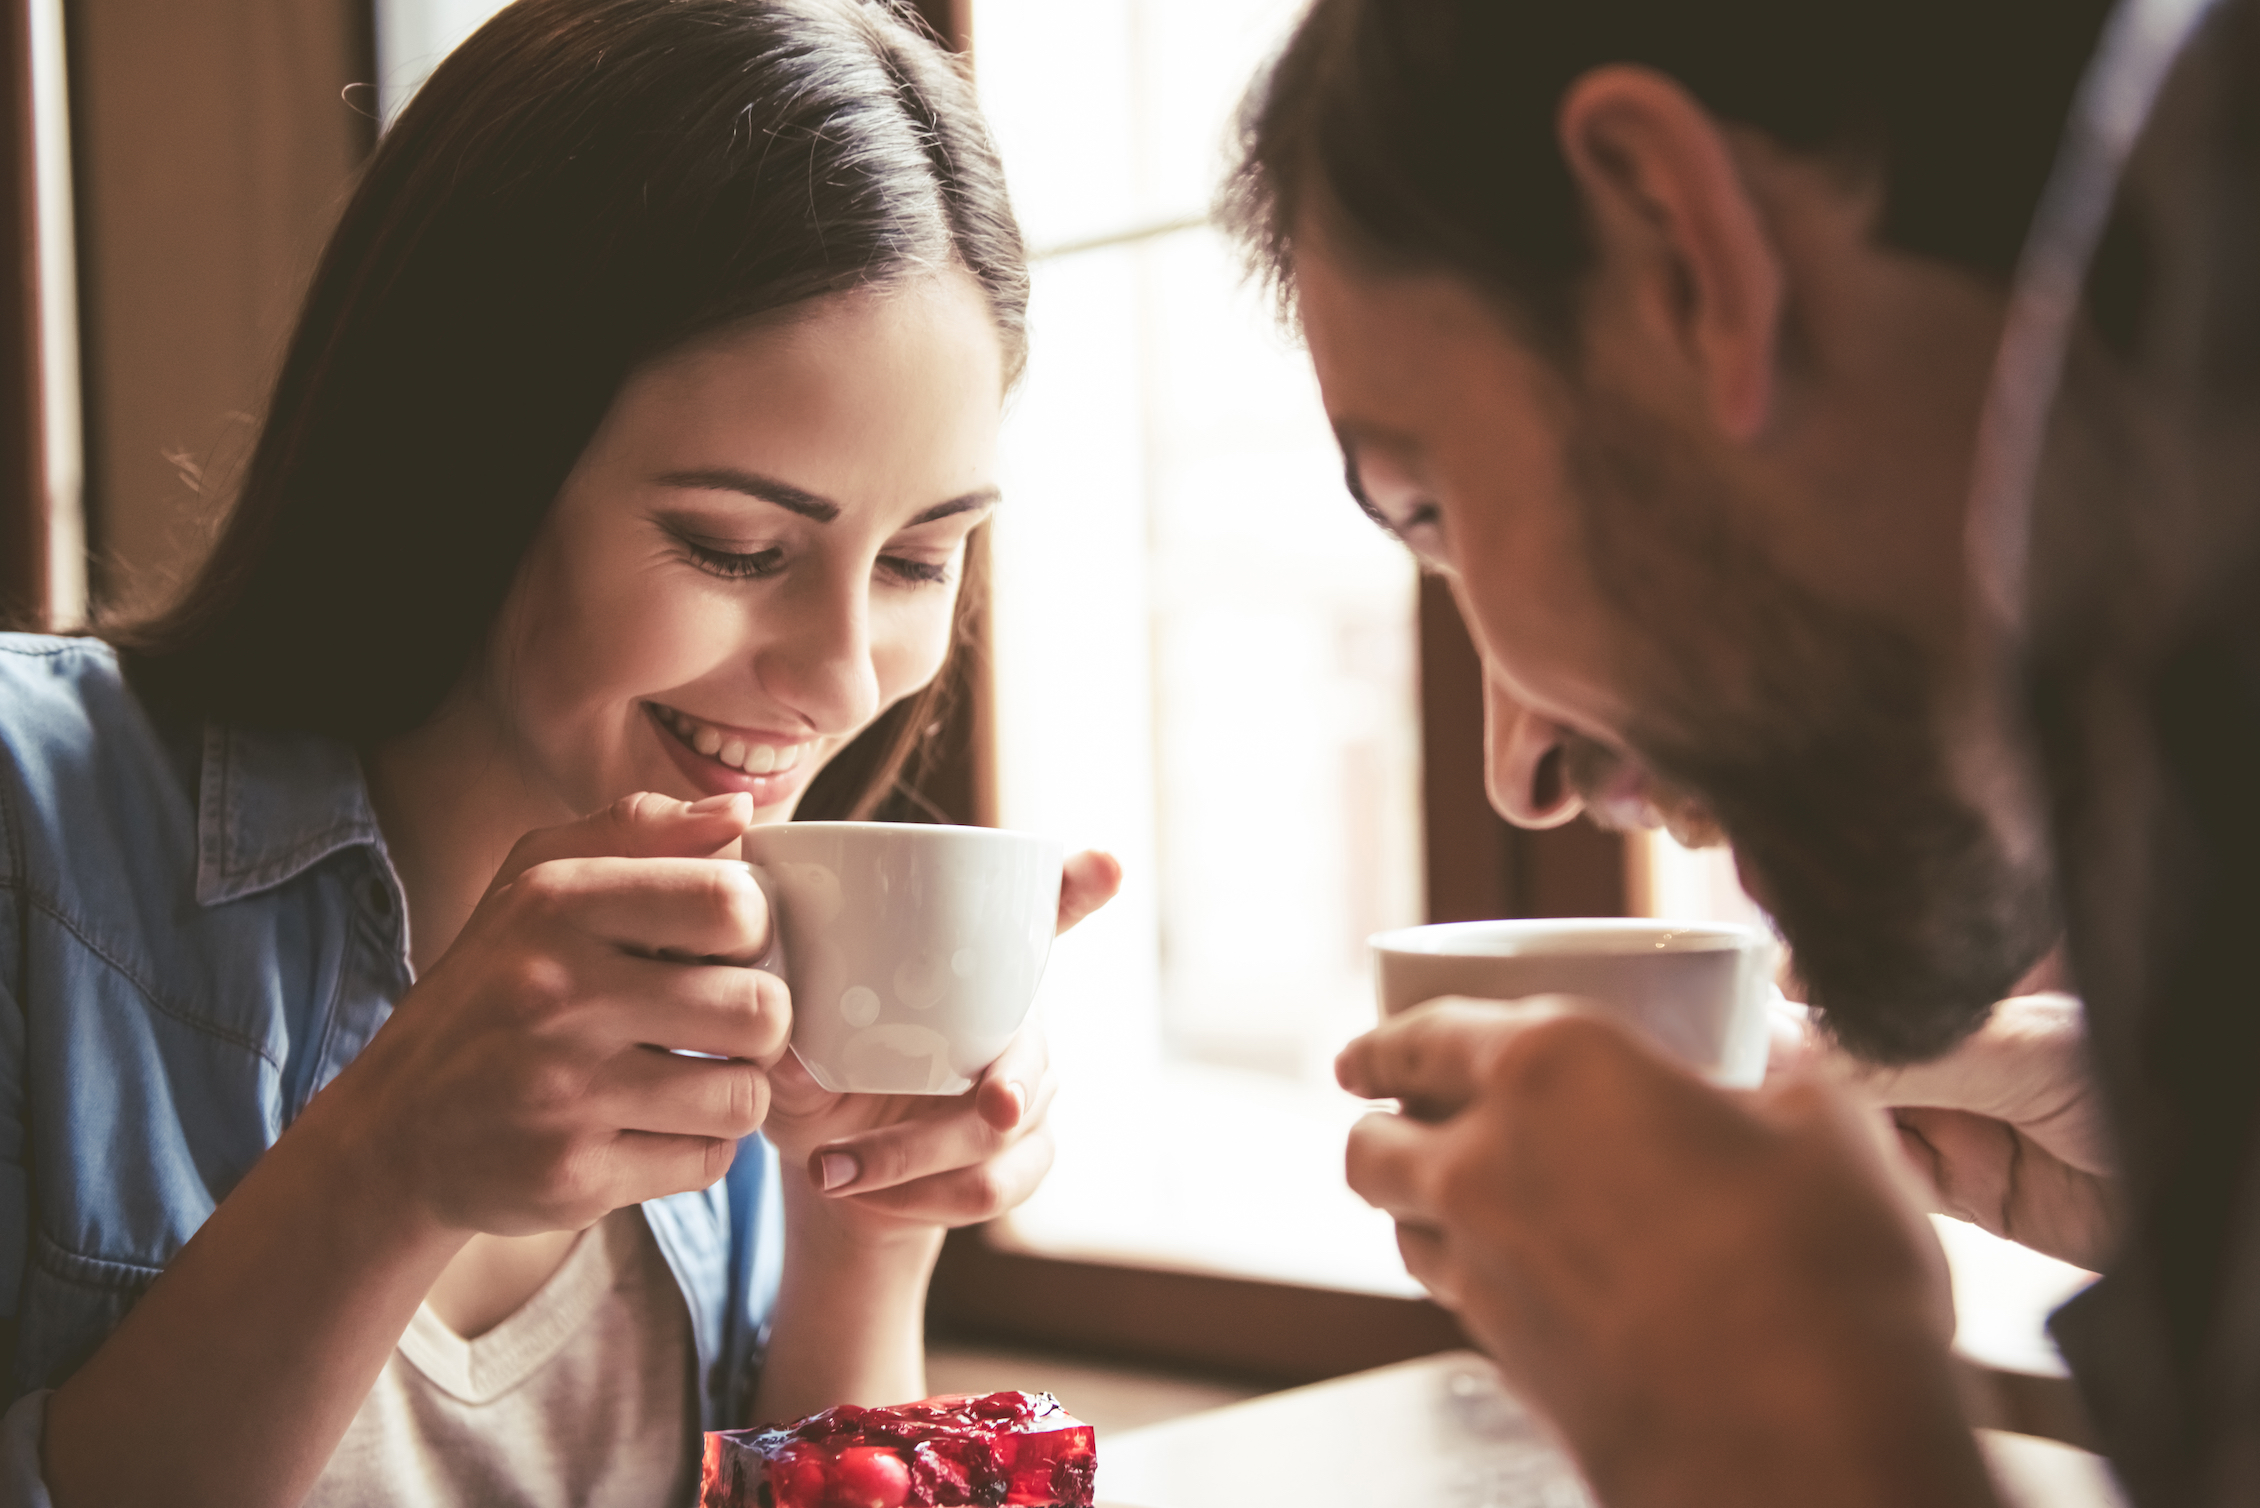 A new report presents a growing amount of evidence that coffee consumption can help to prevent mortality from all causes.